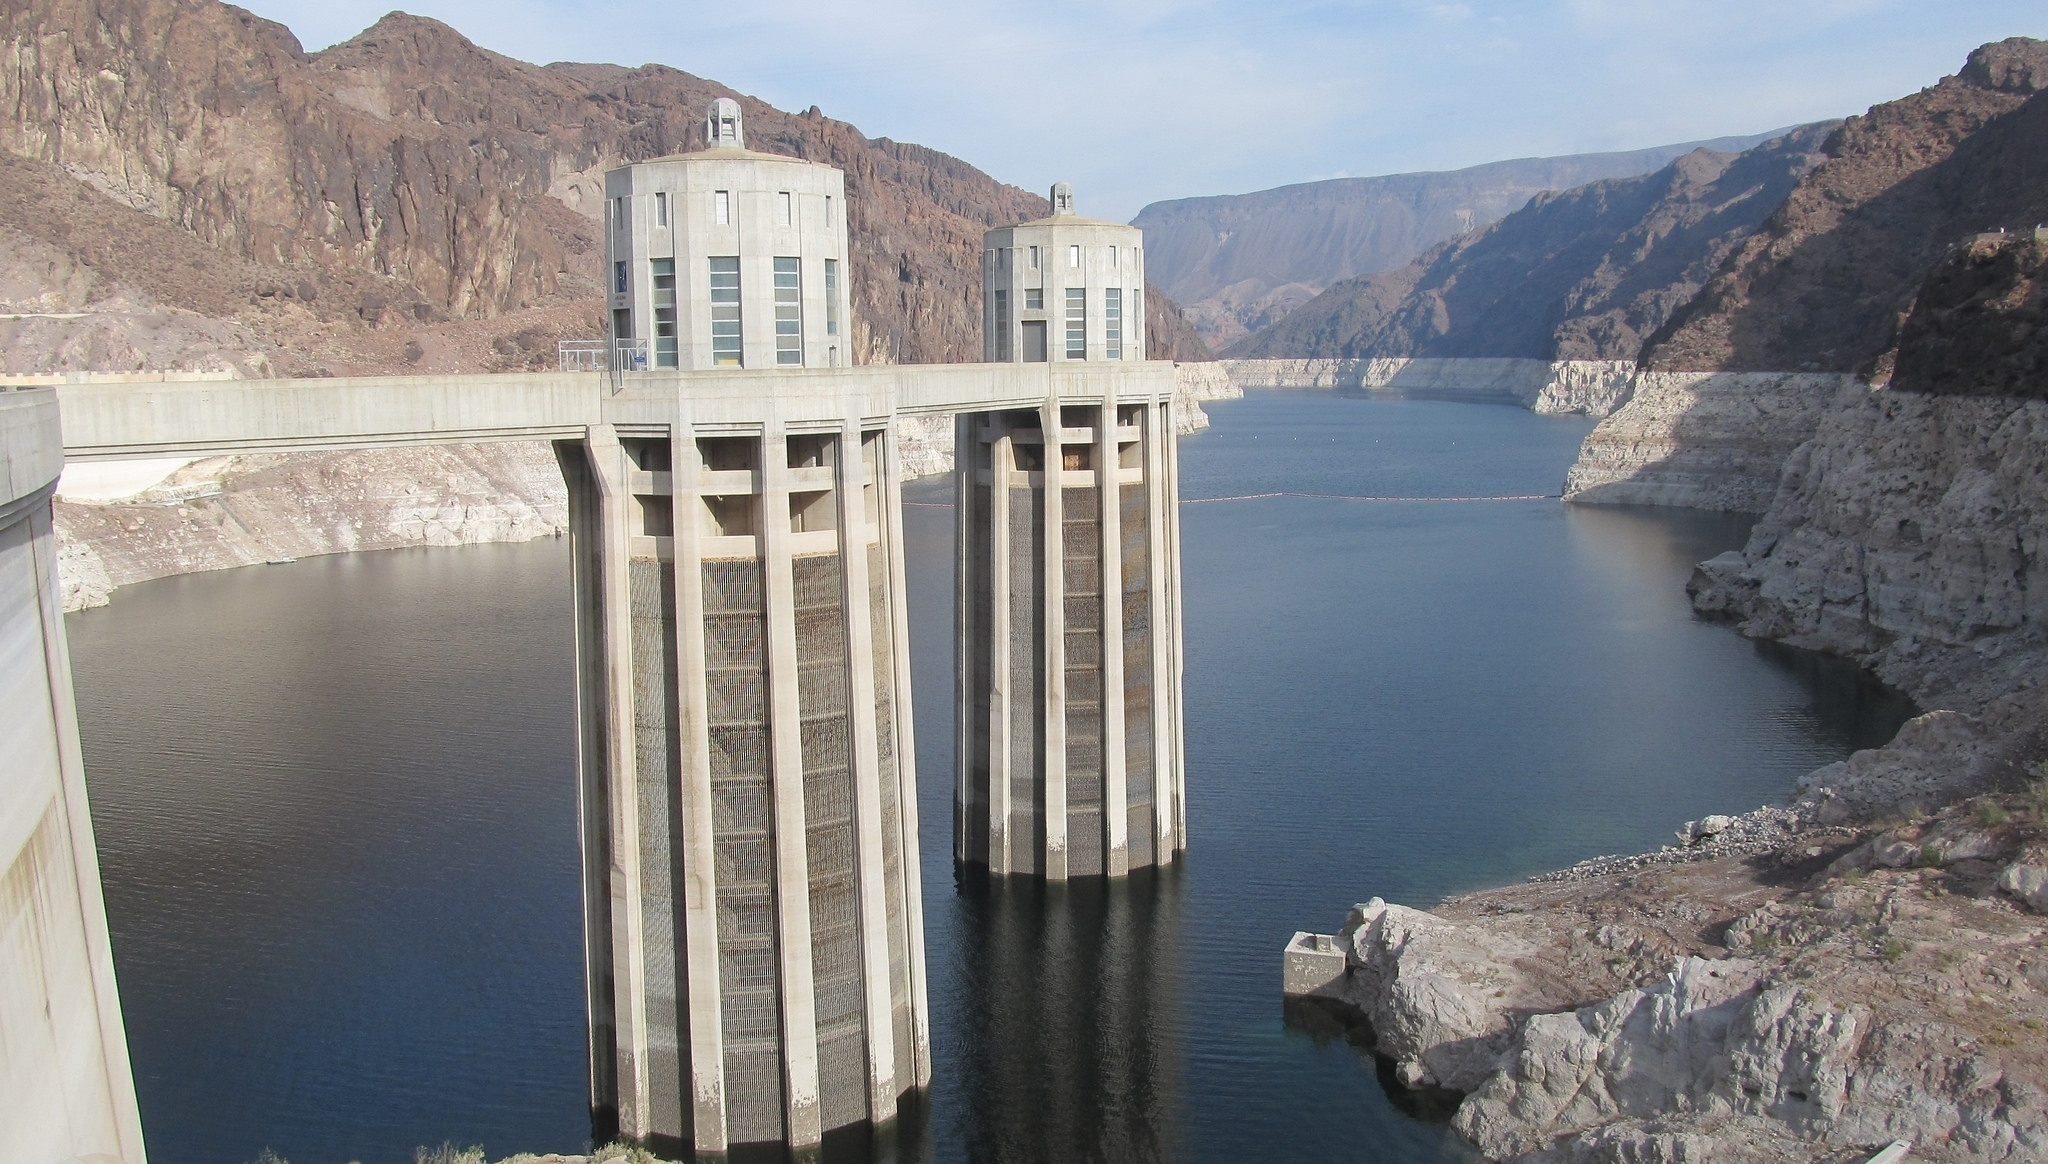 hoover-dam-low-water-2014-823706-edited